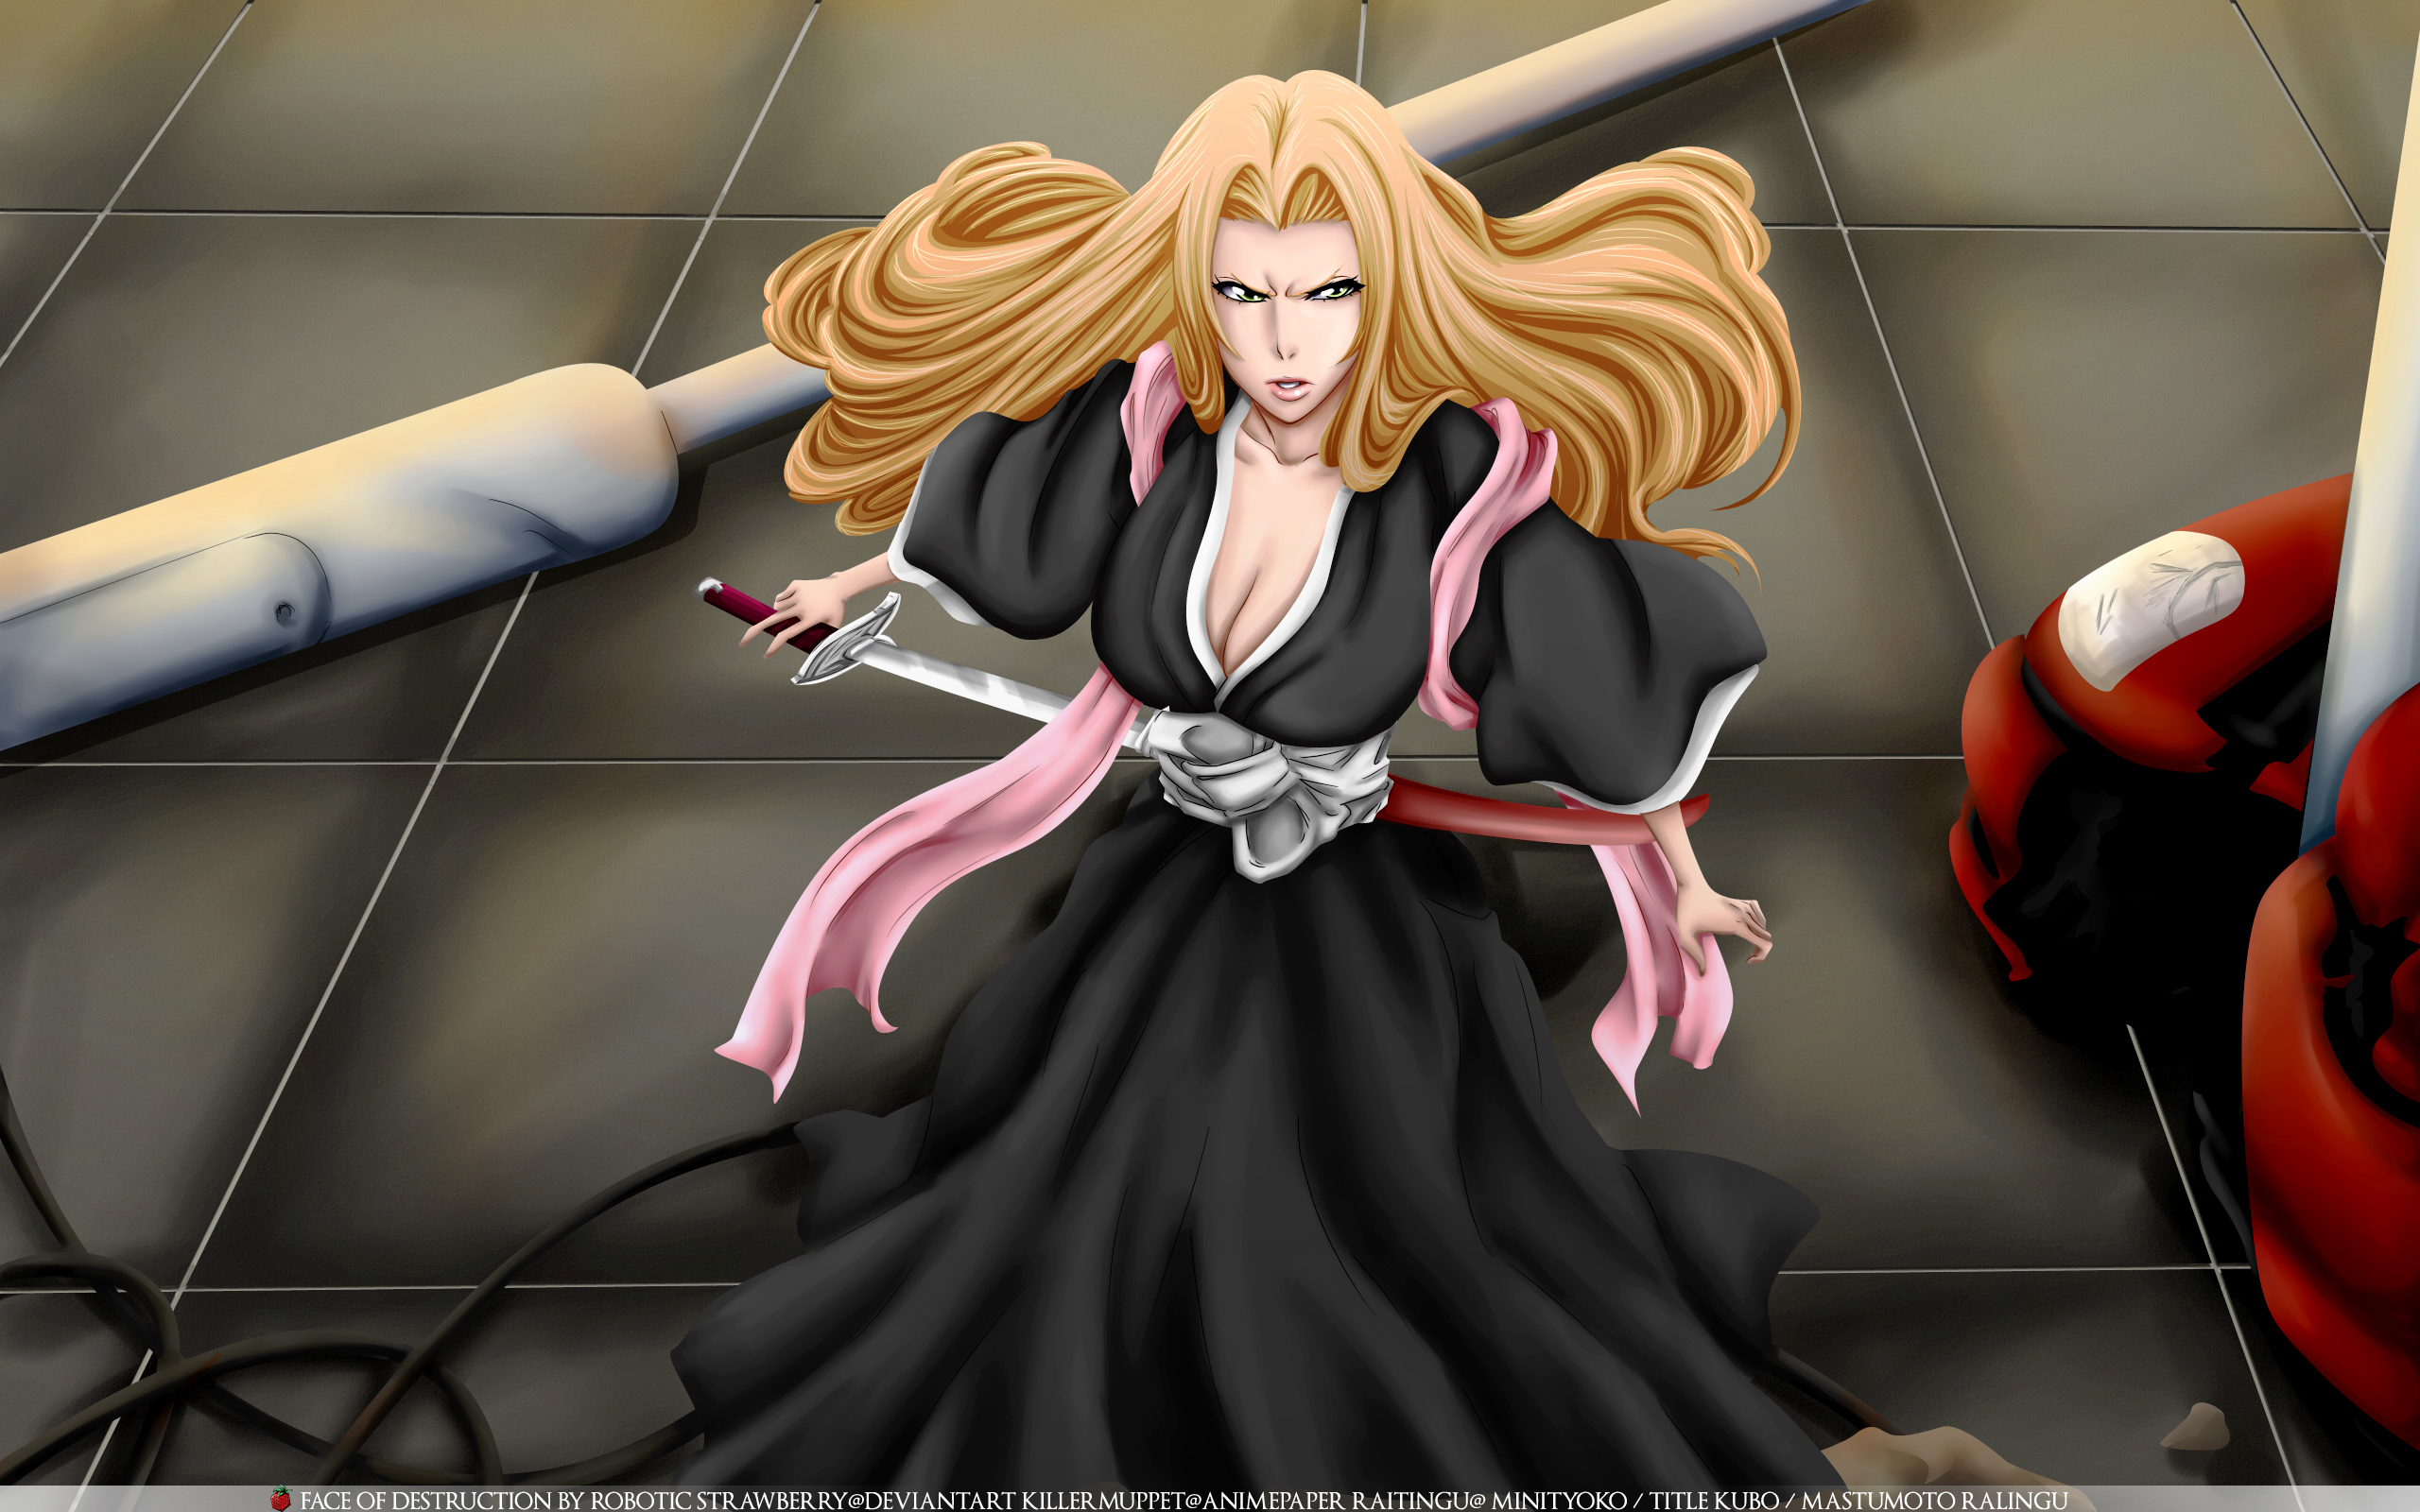 Bleach Wallpaper: Face of destruction - Minitokyo